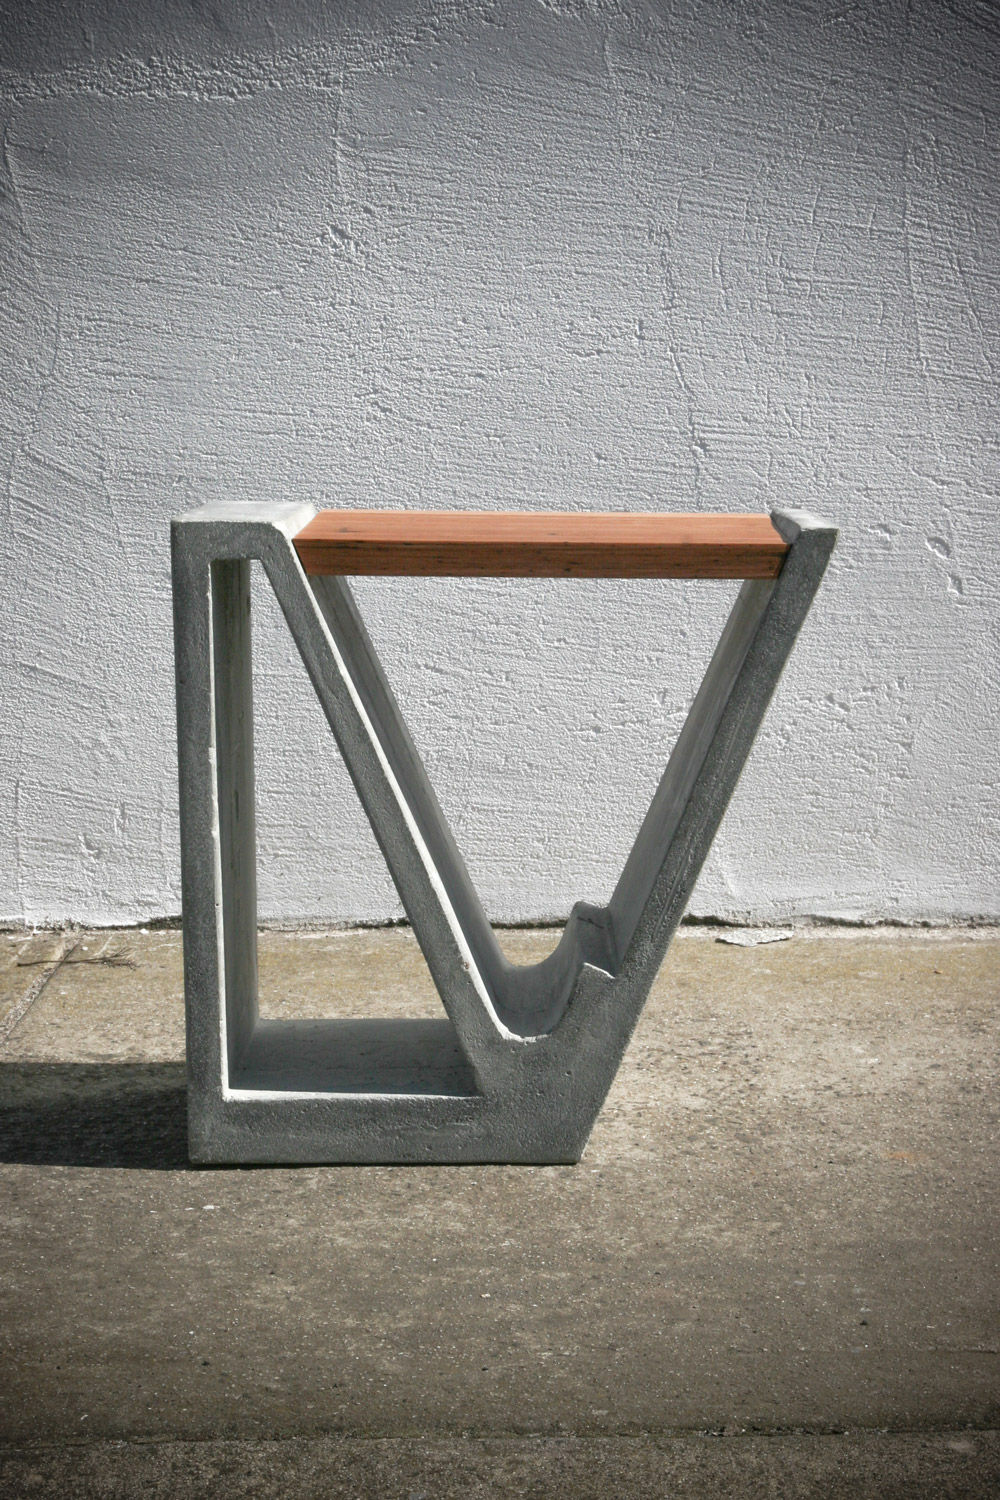 MAGAZINE STABLE Materials:Formed Concrete & Solid Blackbutt Timber Size:[450 w x 300 d L x 450 h] mm Price:$1100 +GST [AUD]